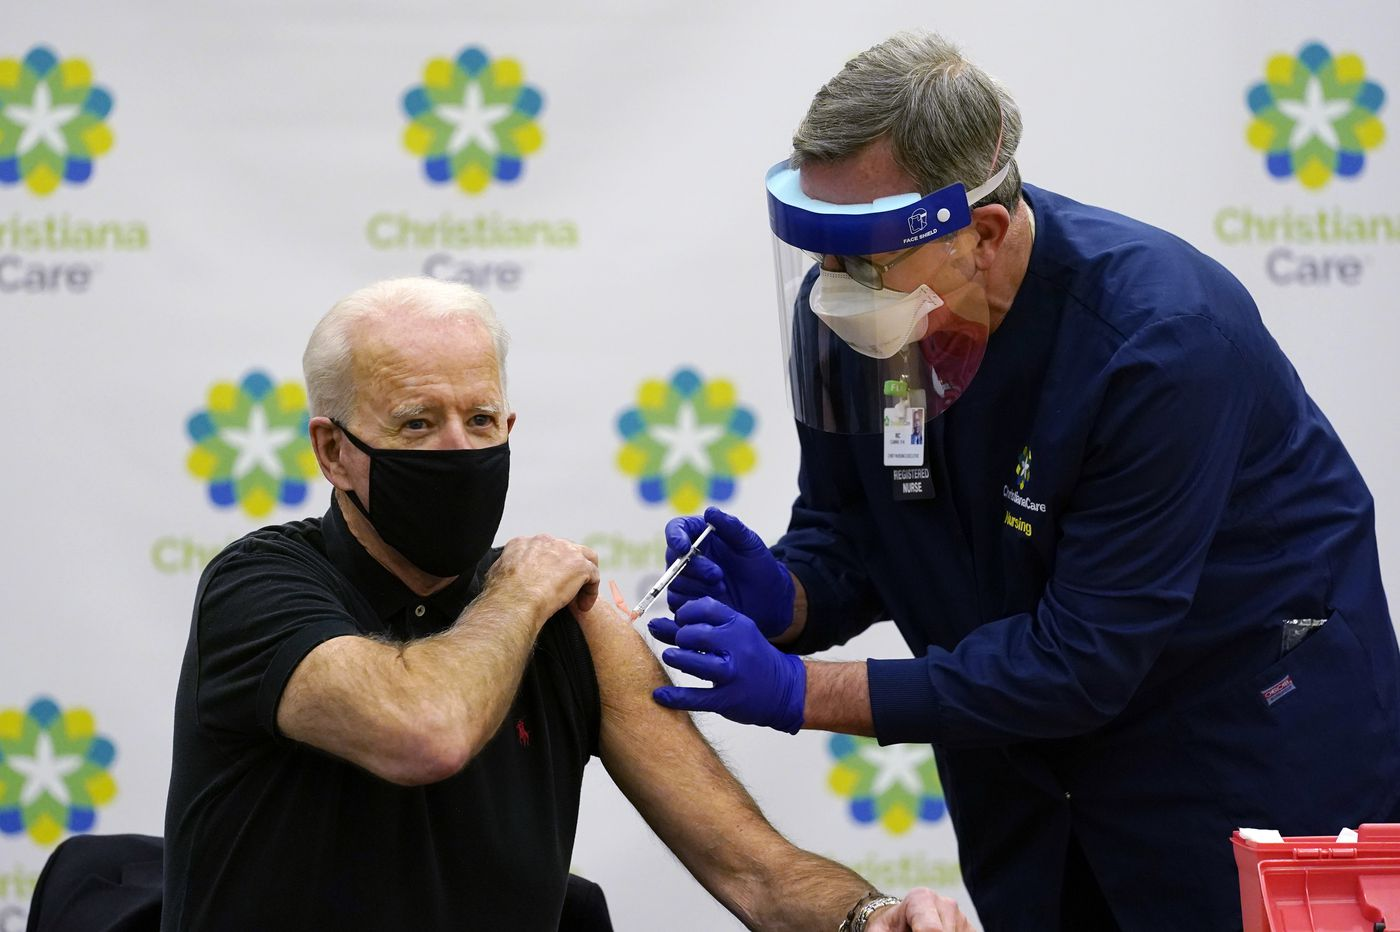 Biden gets his second vaccine dose as his team readies COVID-19 plan